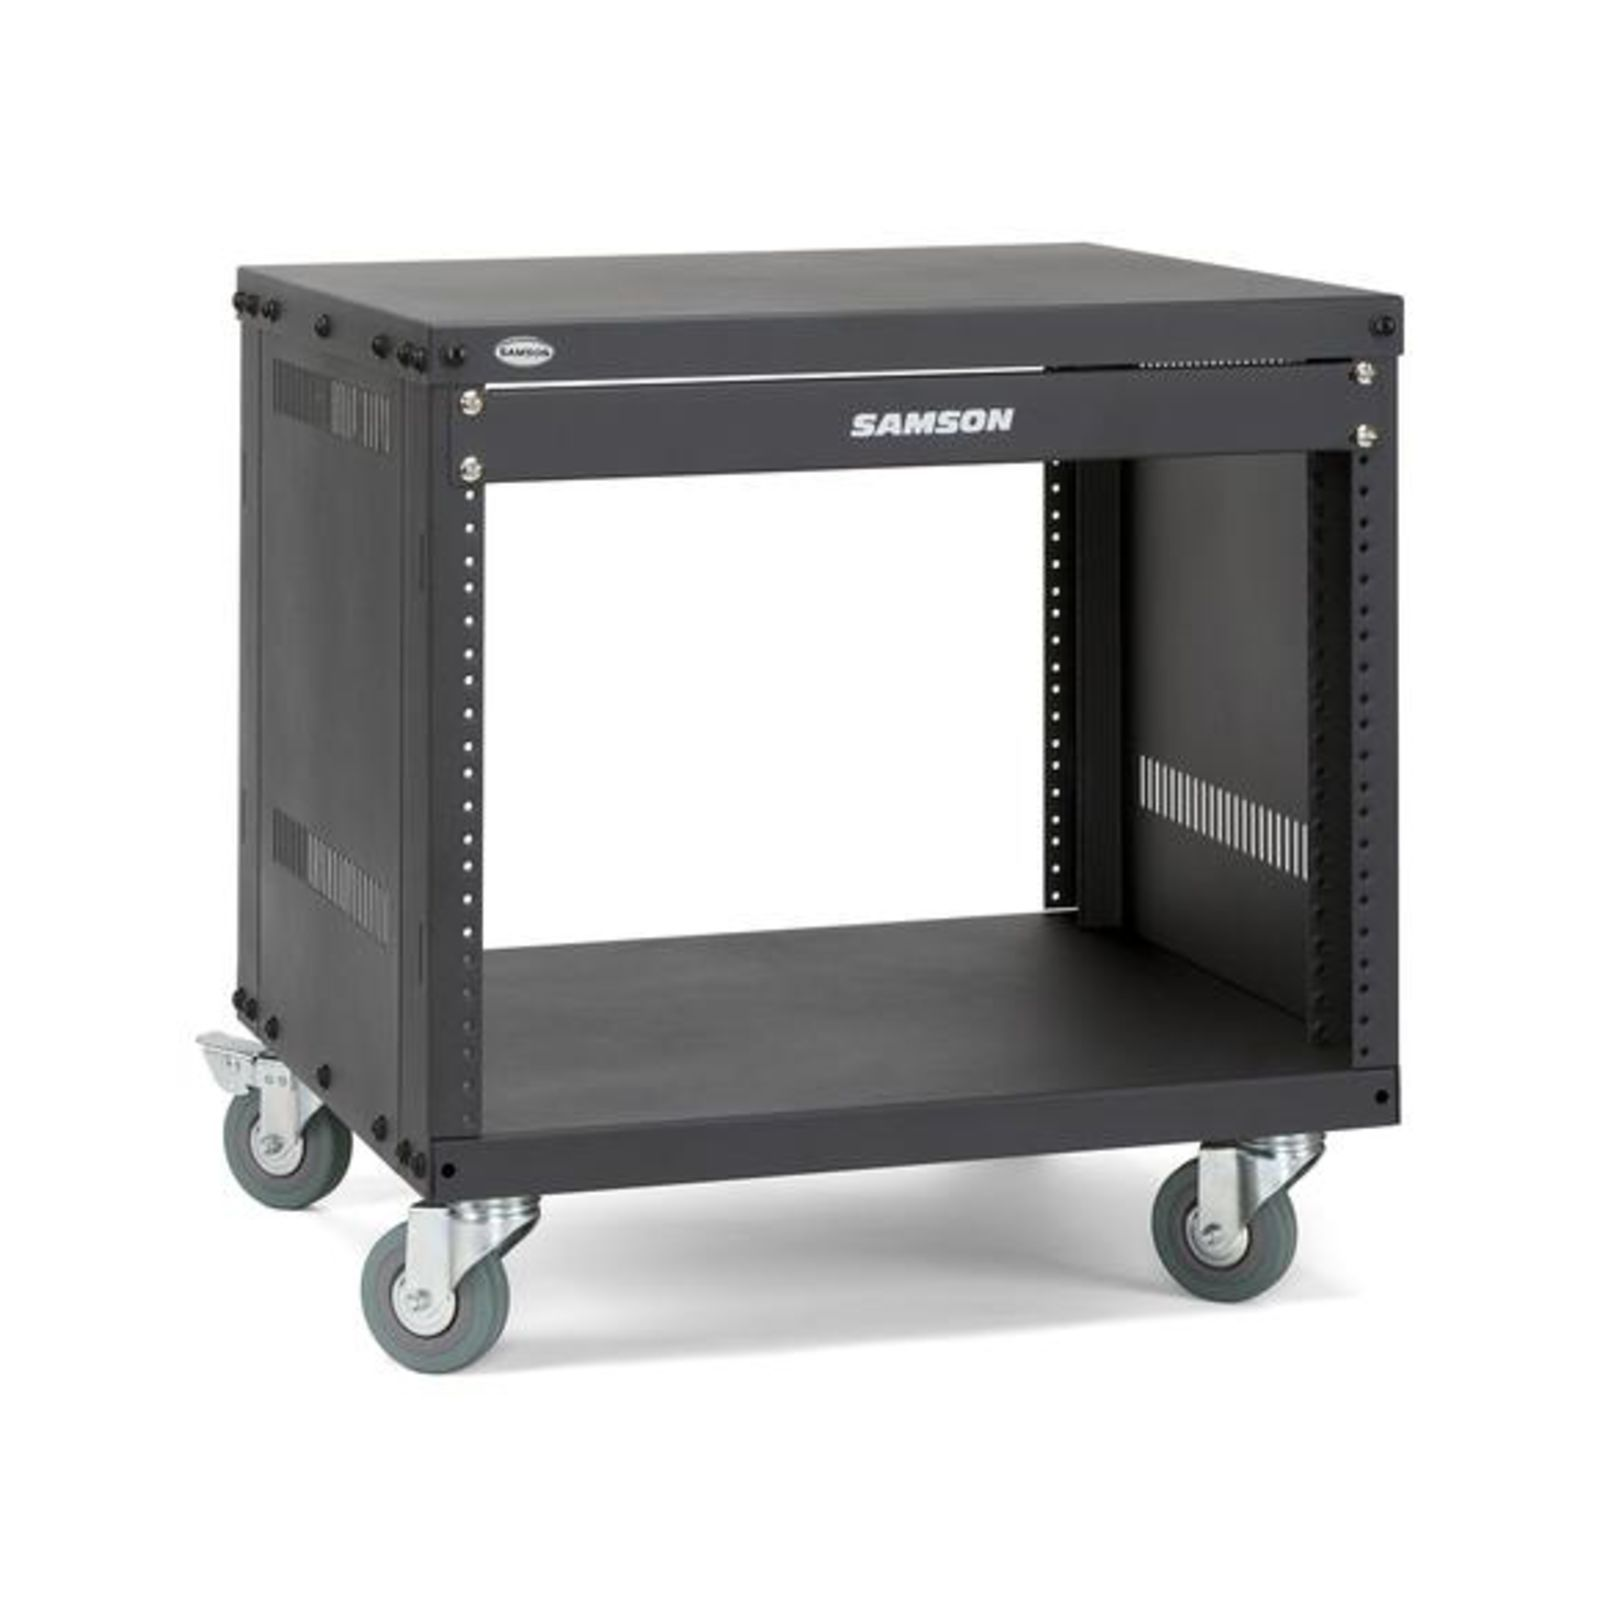 Samson SRK 8 8HE Equipment Rack Produktbild